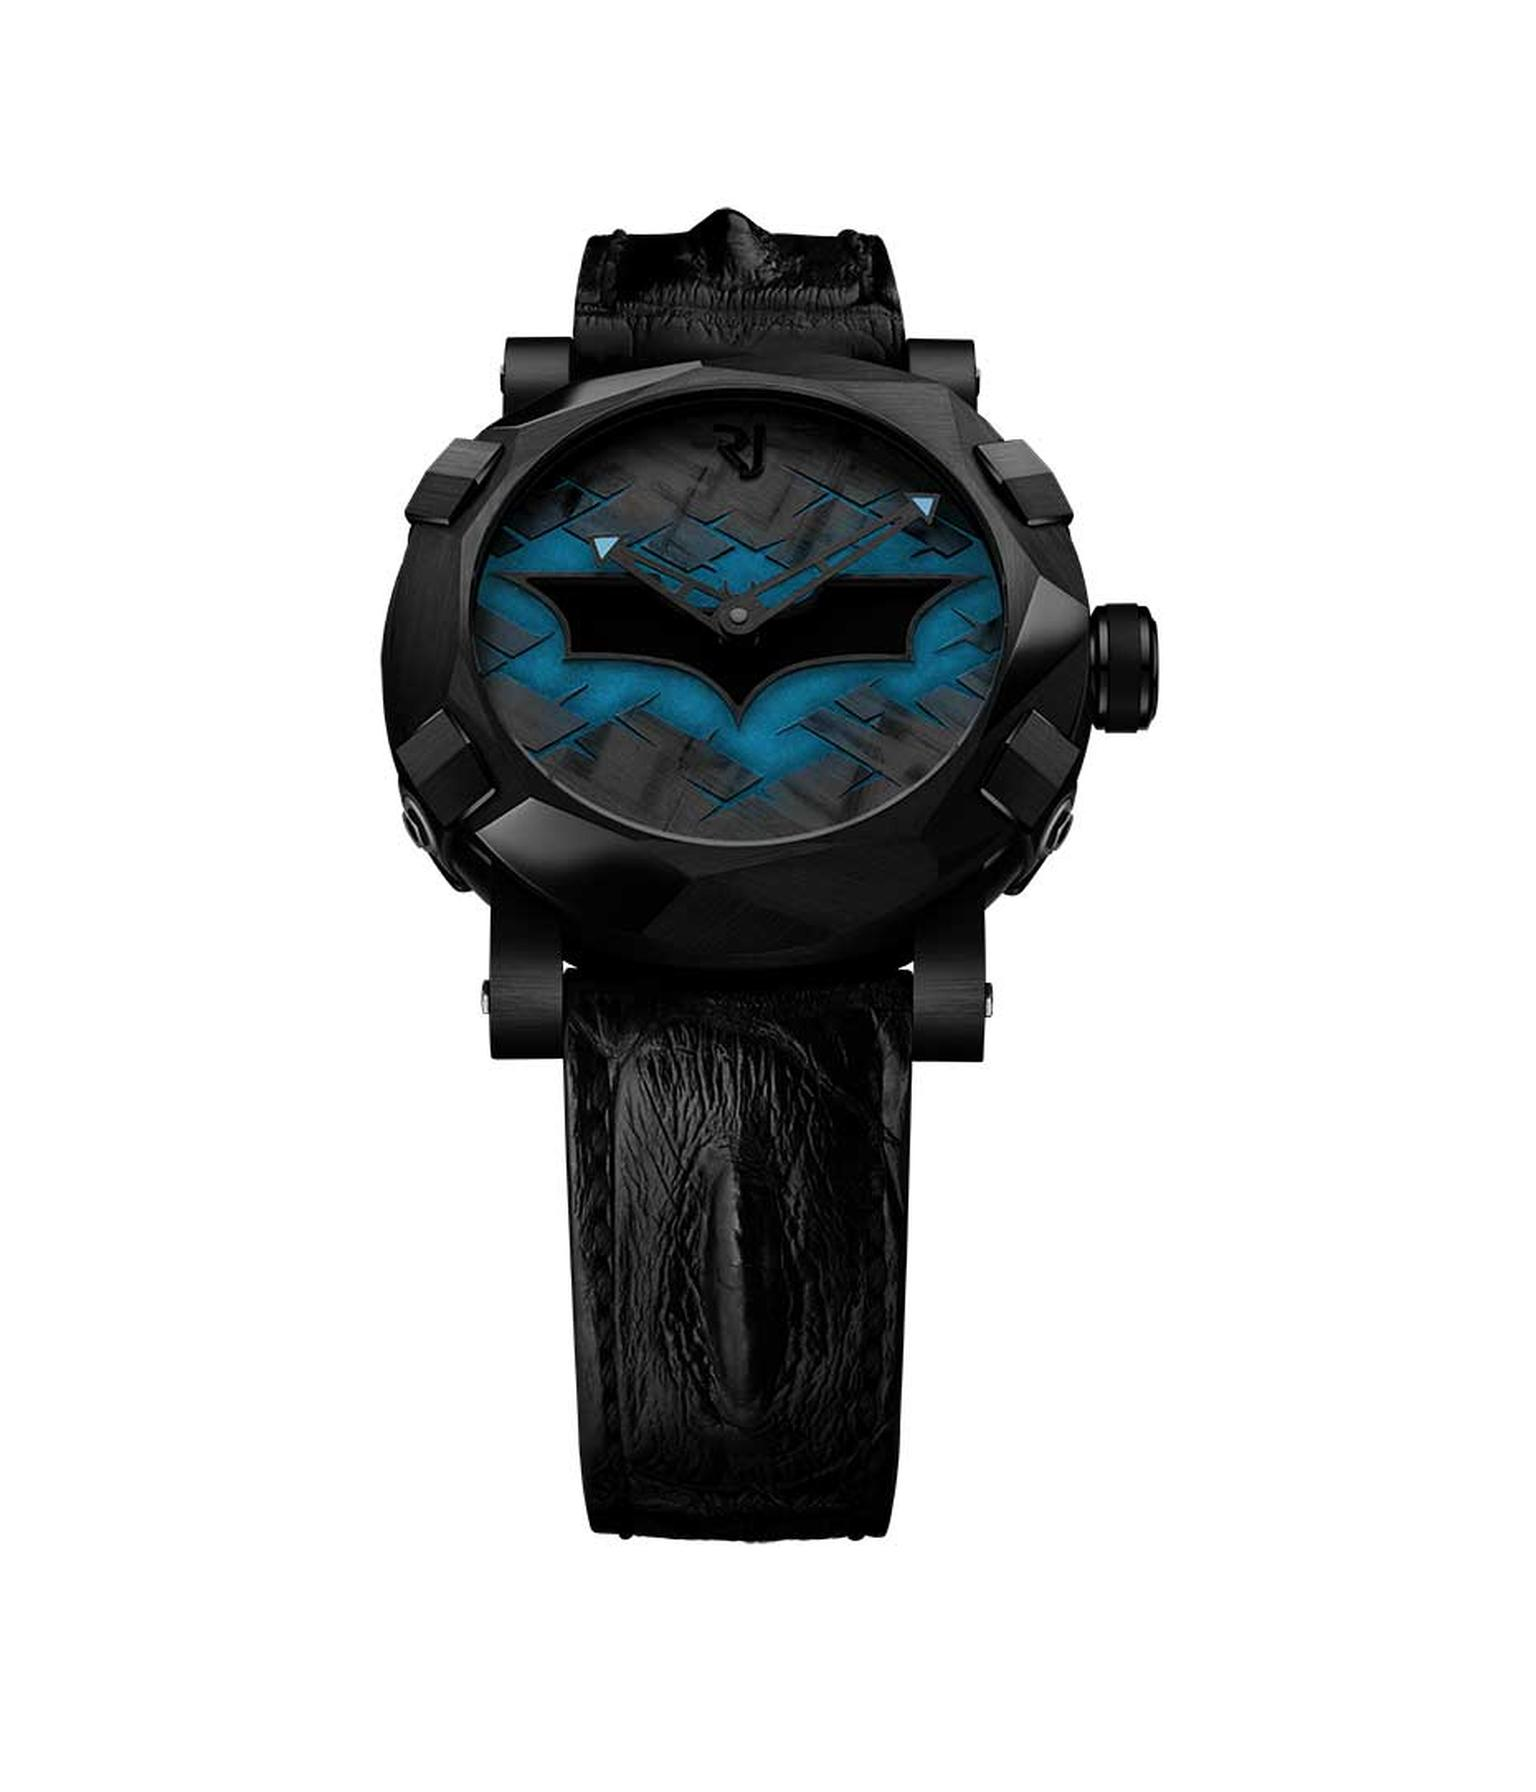 Swiss watchmaker Romain Jerome is celebrating the 75th anniversary of the Dark Knight with the RJ-Romain Jerome Batman-DNA watch, which recreates the angular contours of the Batmobile on its dramatic 46mm black PVD-coated case watch.